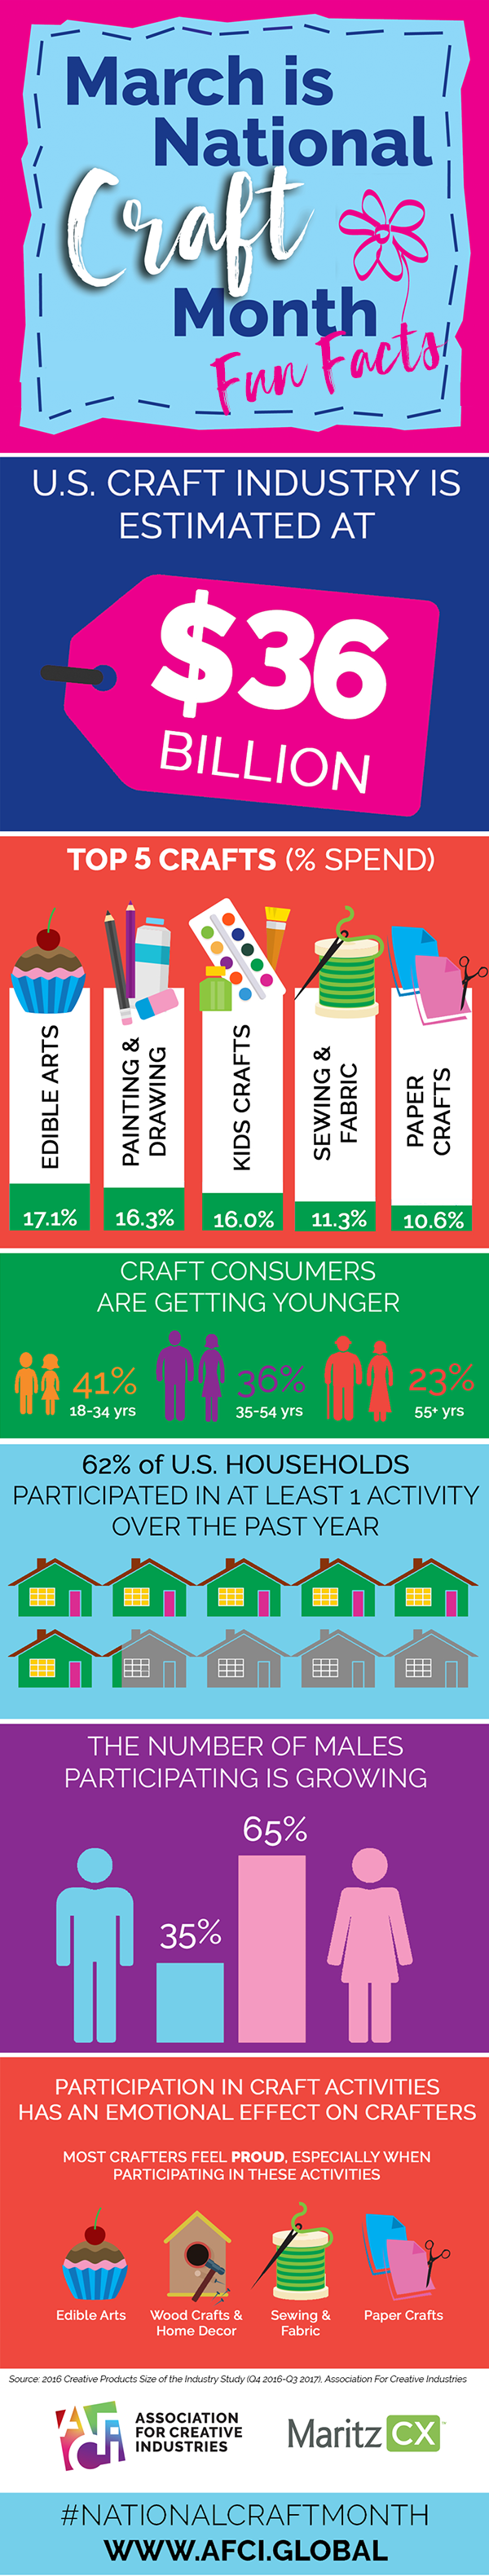 National Craft Month fun facts_2019